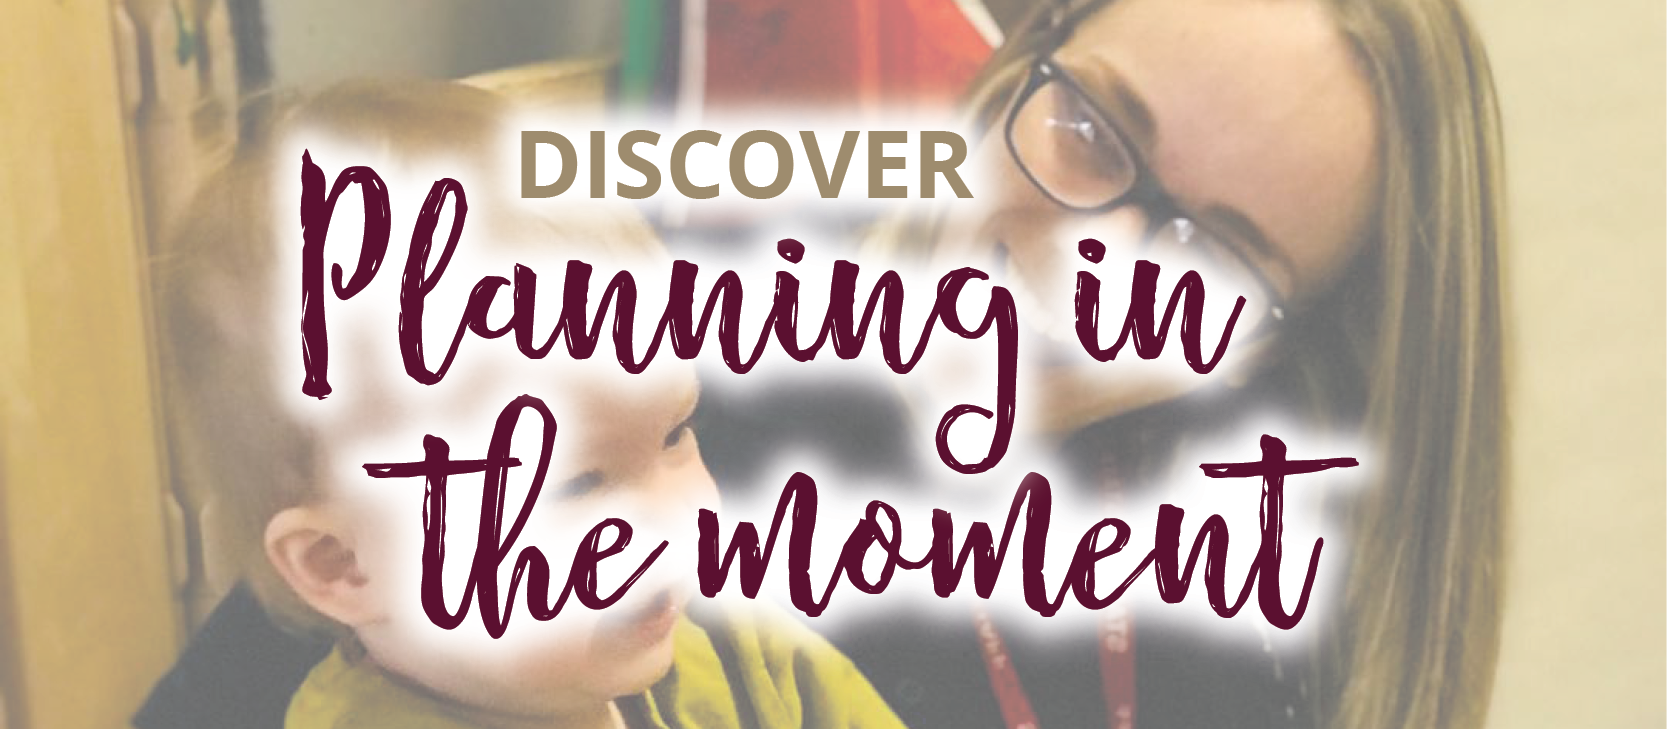 North Gloucestershire Network - Discover Planning in The Moment - 19/02/2022